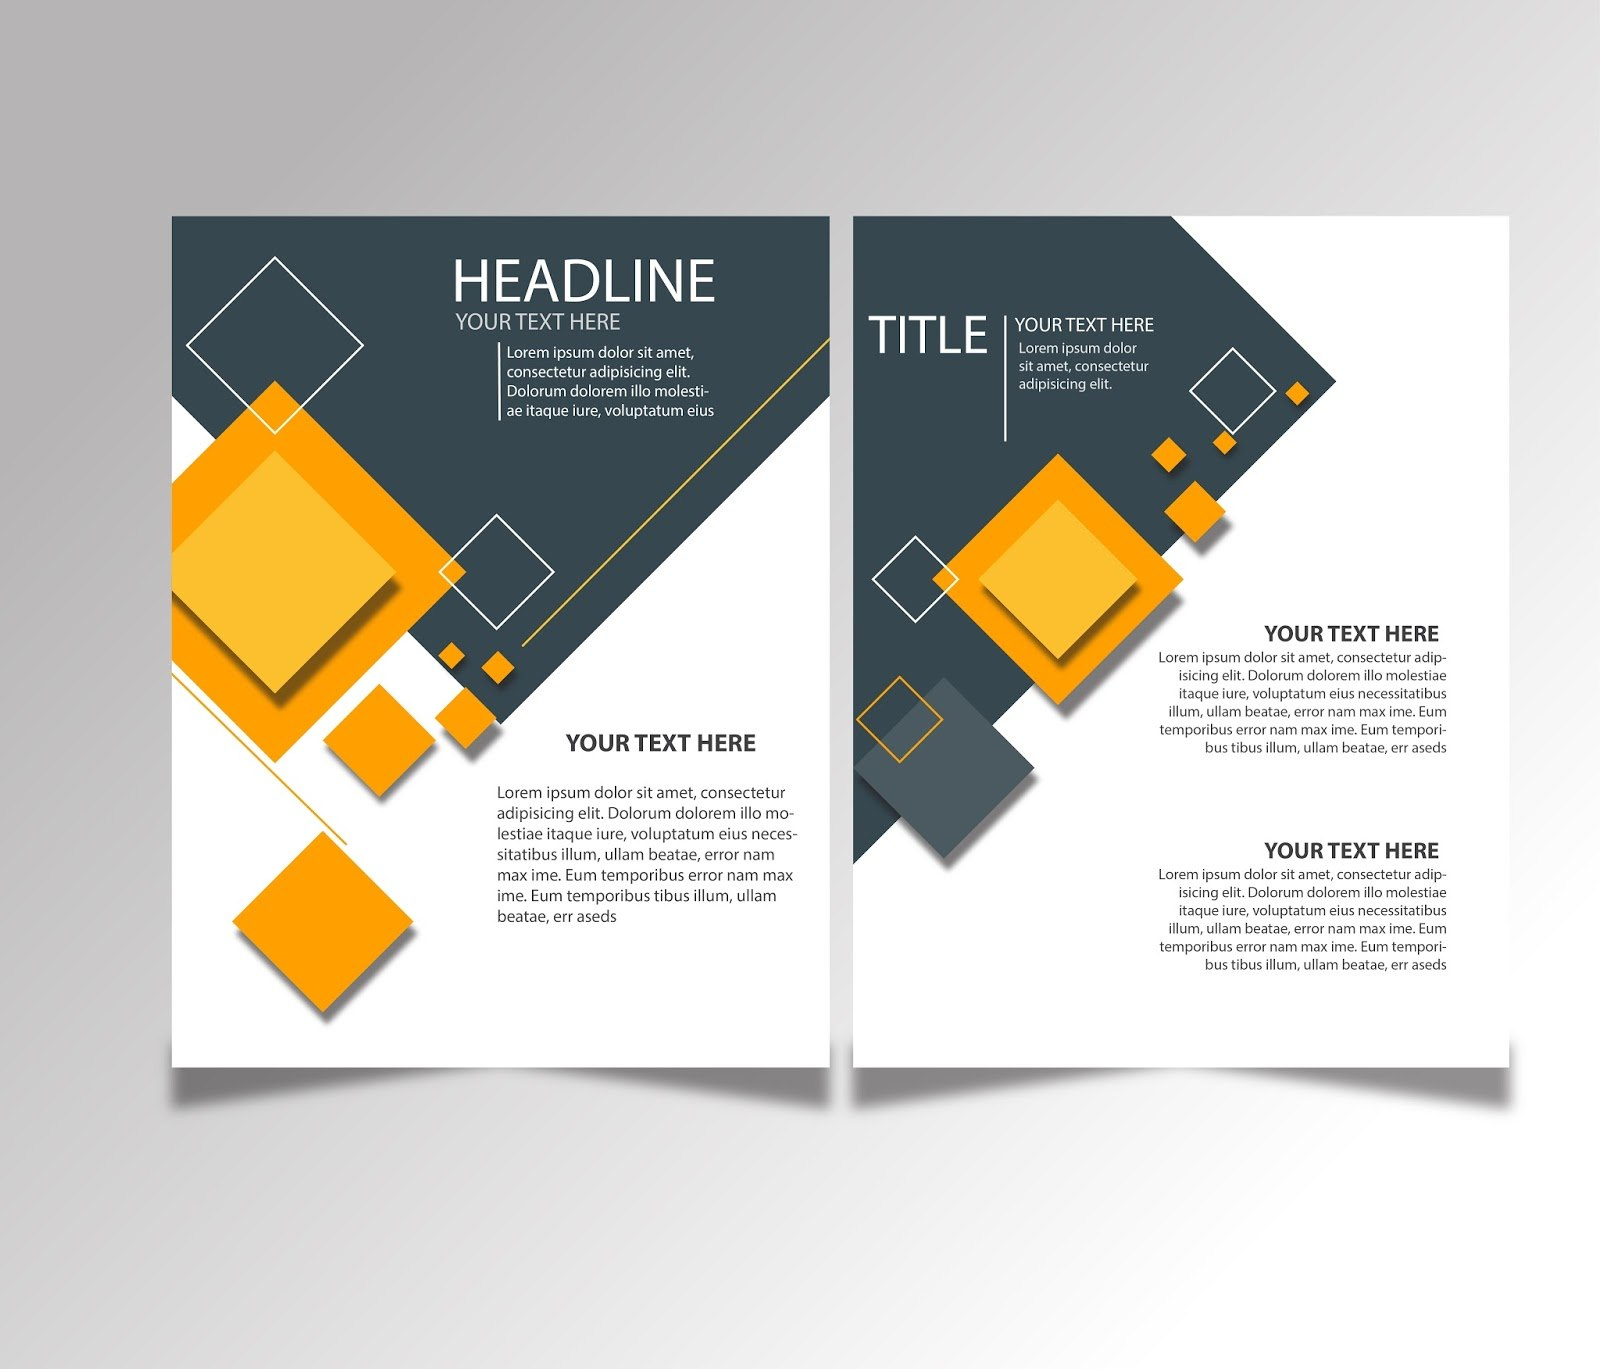 Free Download Brochure Design Templates Ai Files  Ideosprocess Pertaining To Brochure Templates Ai Free Download